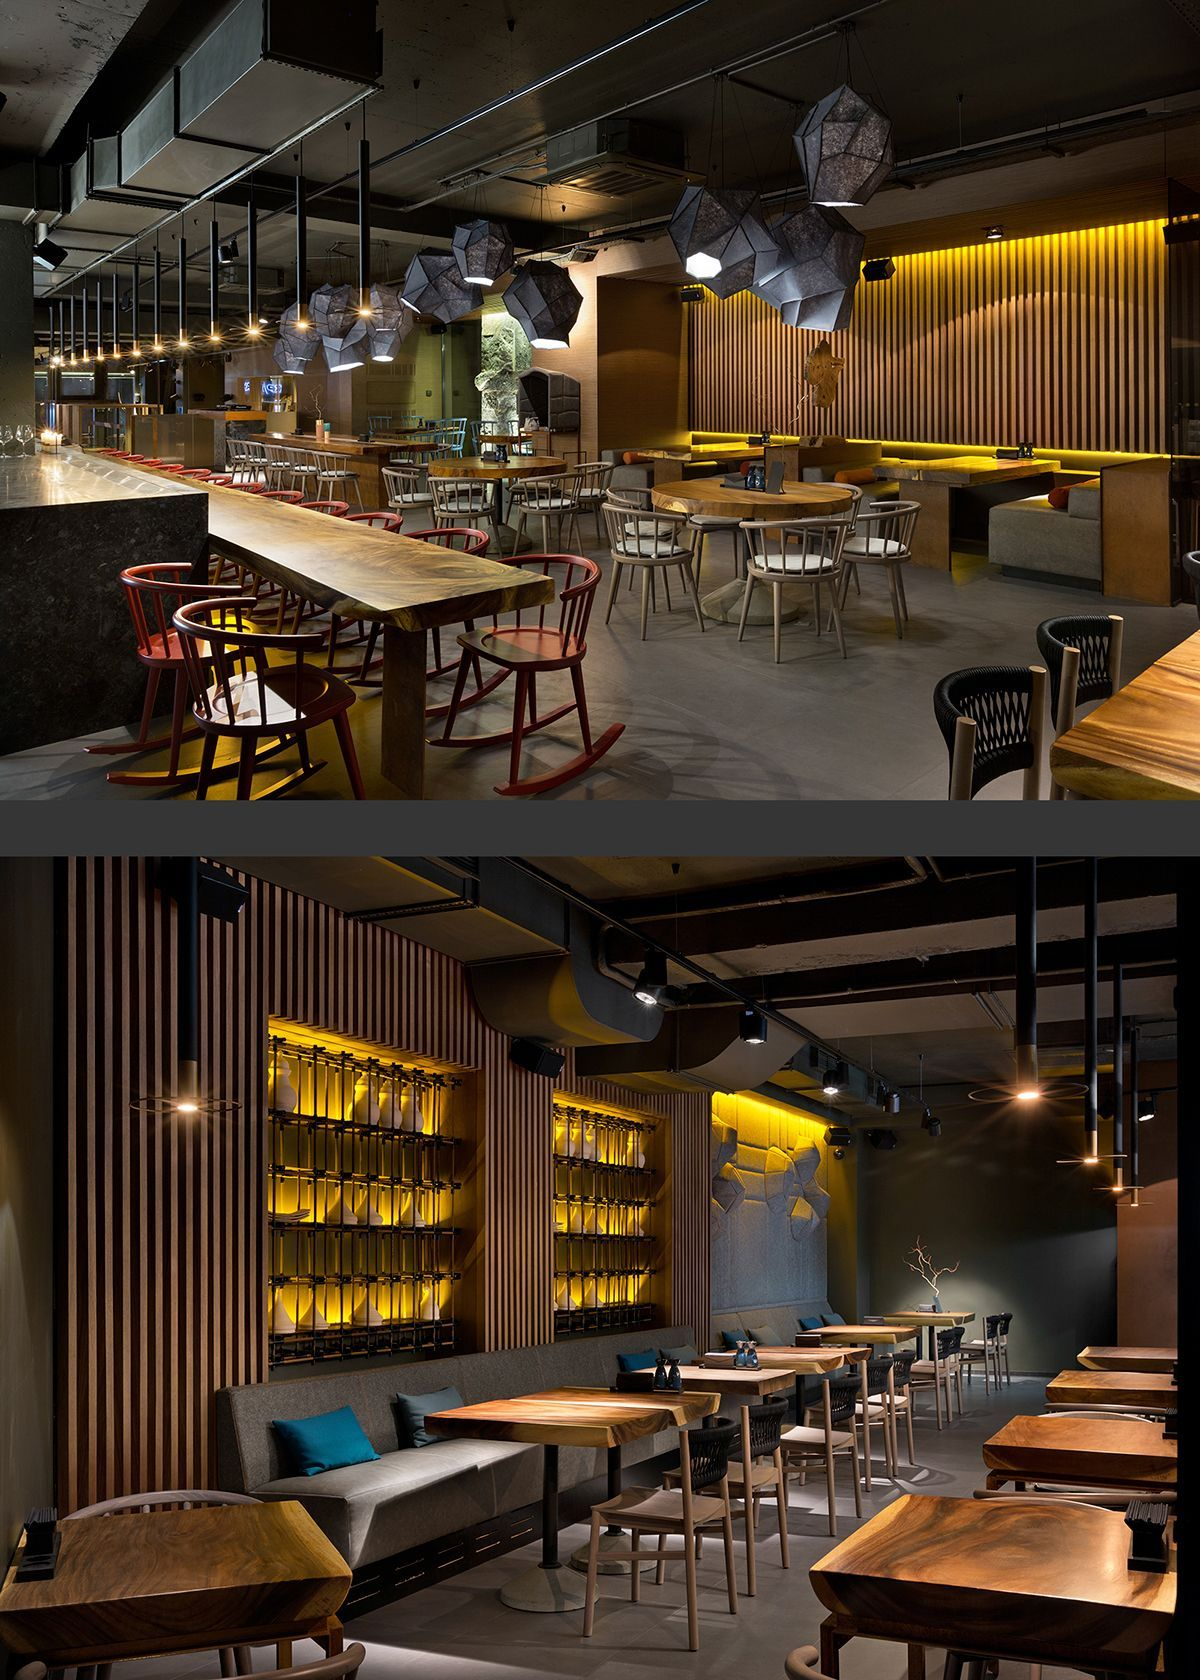 New Pan Asian Restaurant Designed By Yod Design Studio Restaurantdesign